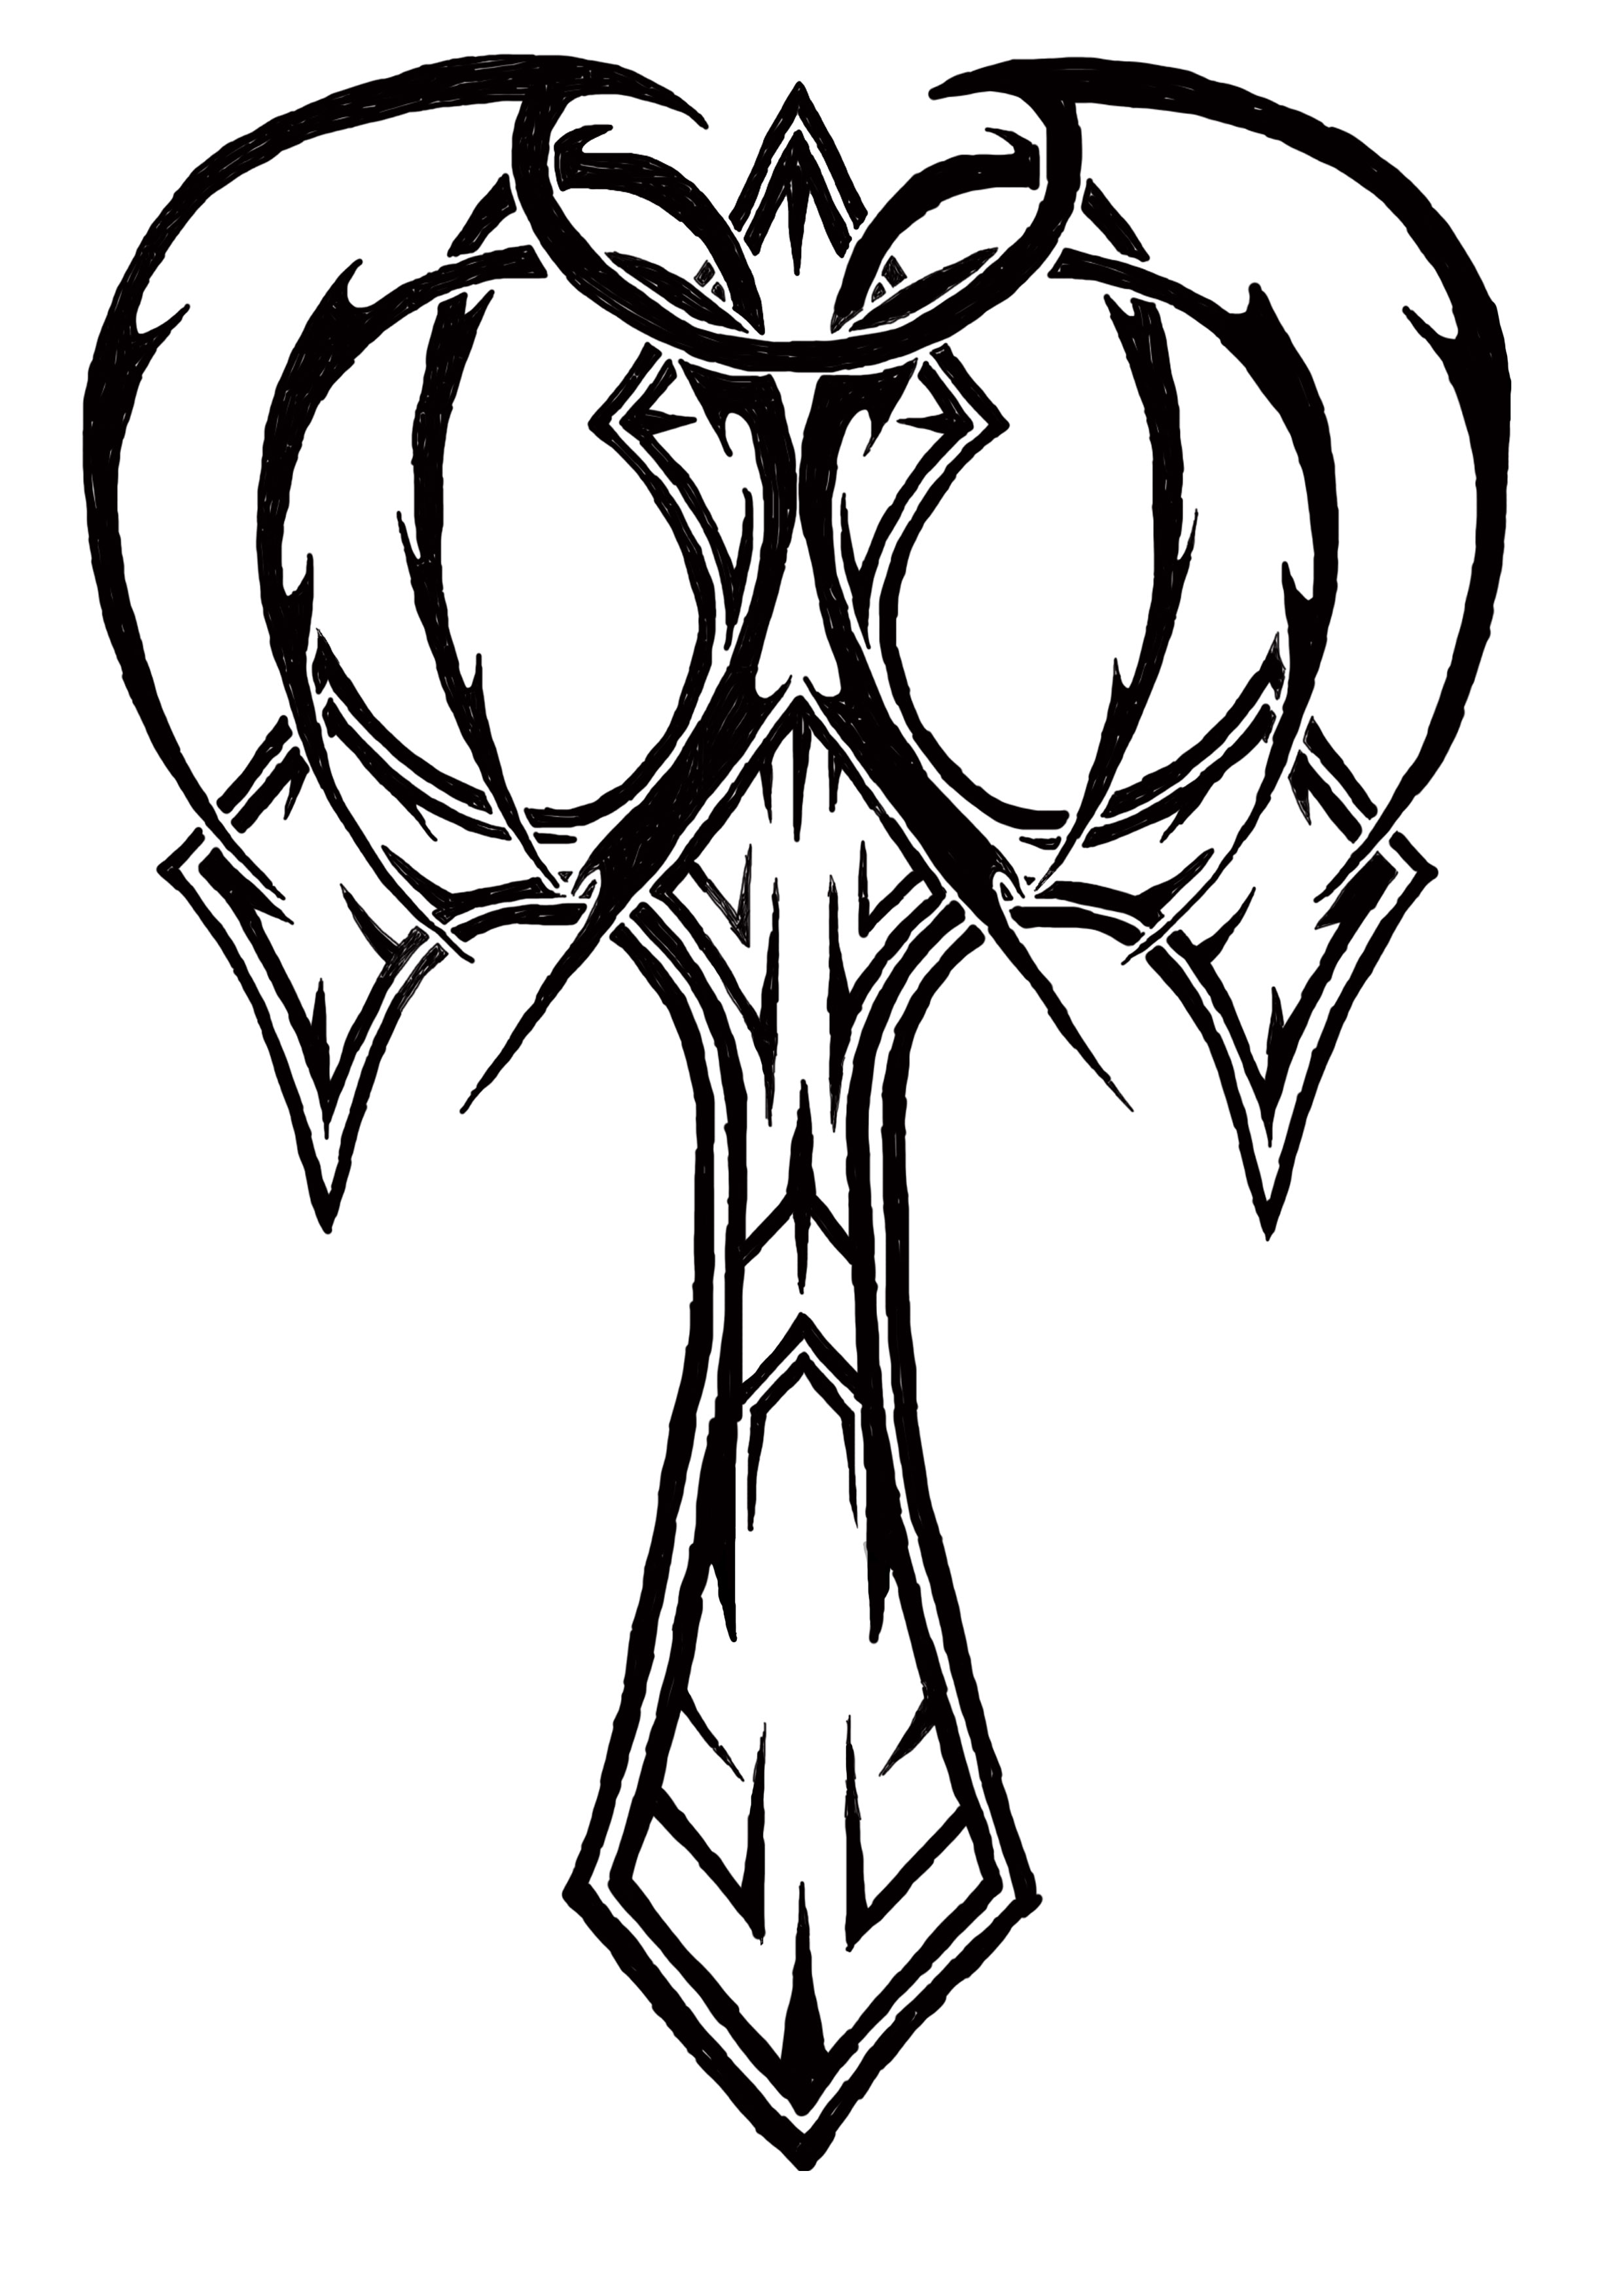 Christian Symbols And Meanings For Tattoos 62208 Loadtve